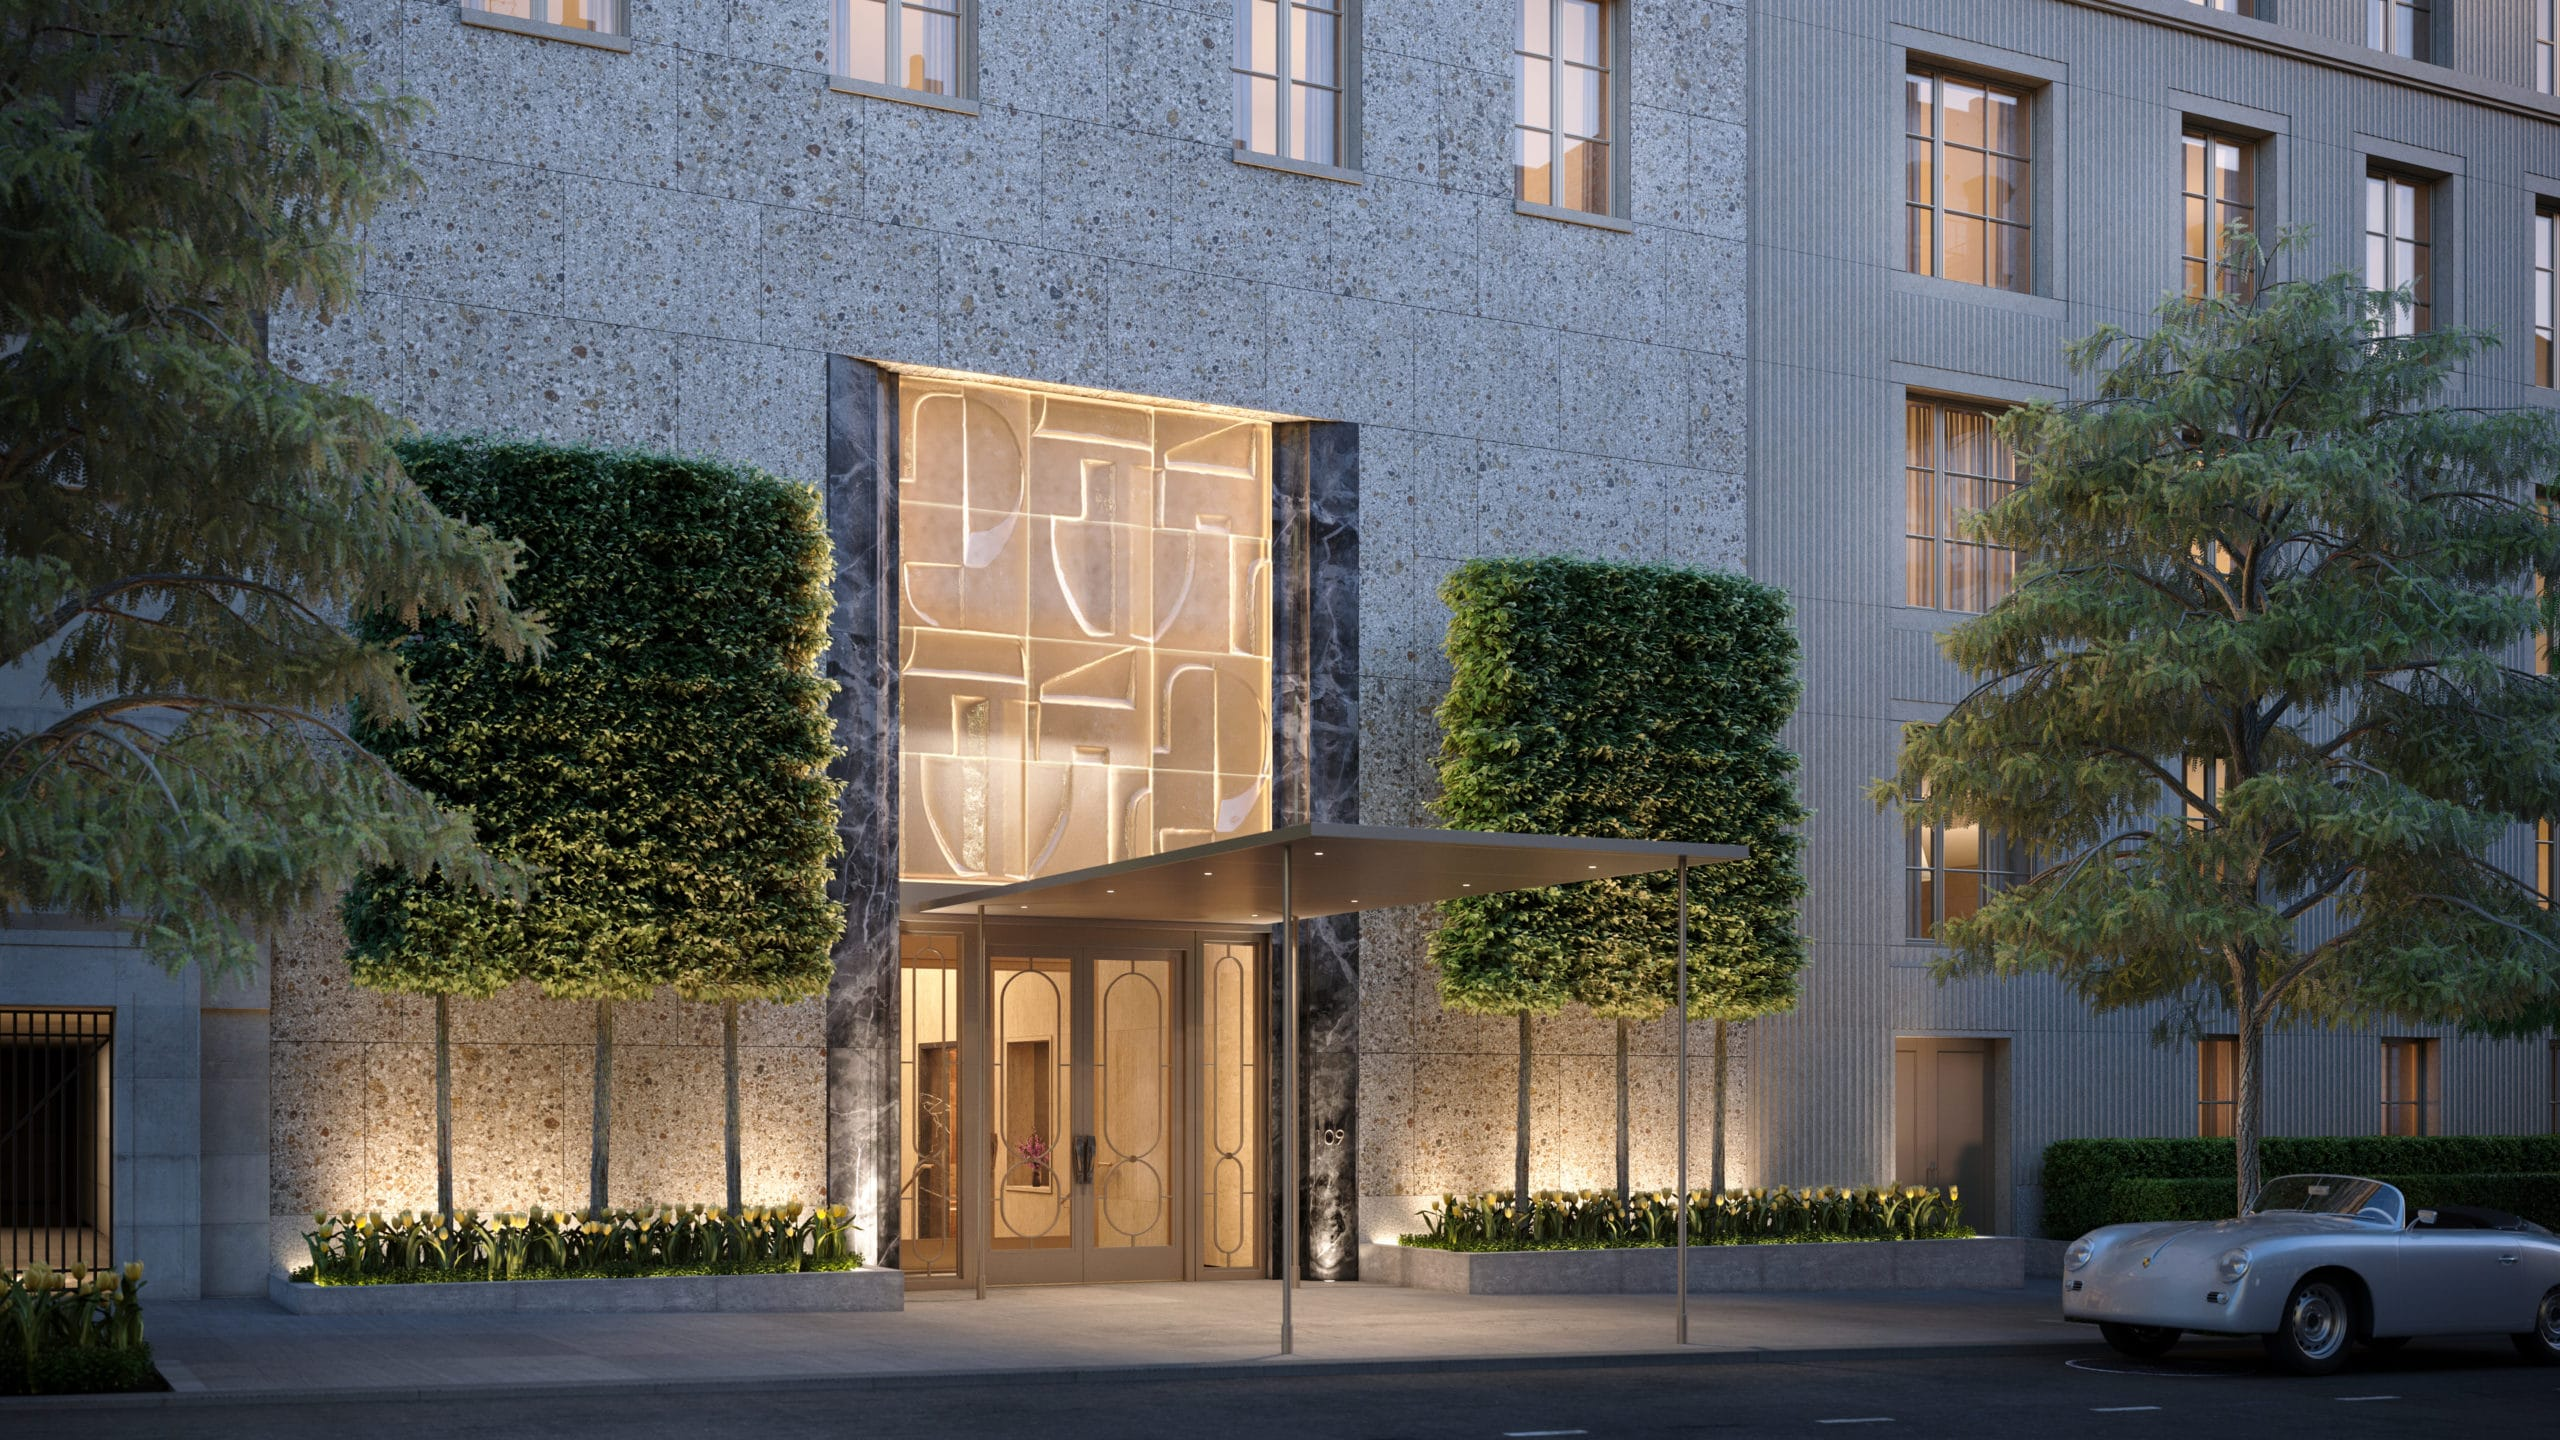 Rendering of entrance to 109 East 79th homes in New York. Entry is framed by marble wings & topped with glass paneling.